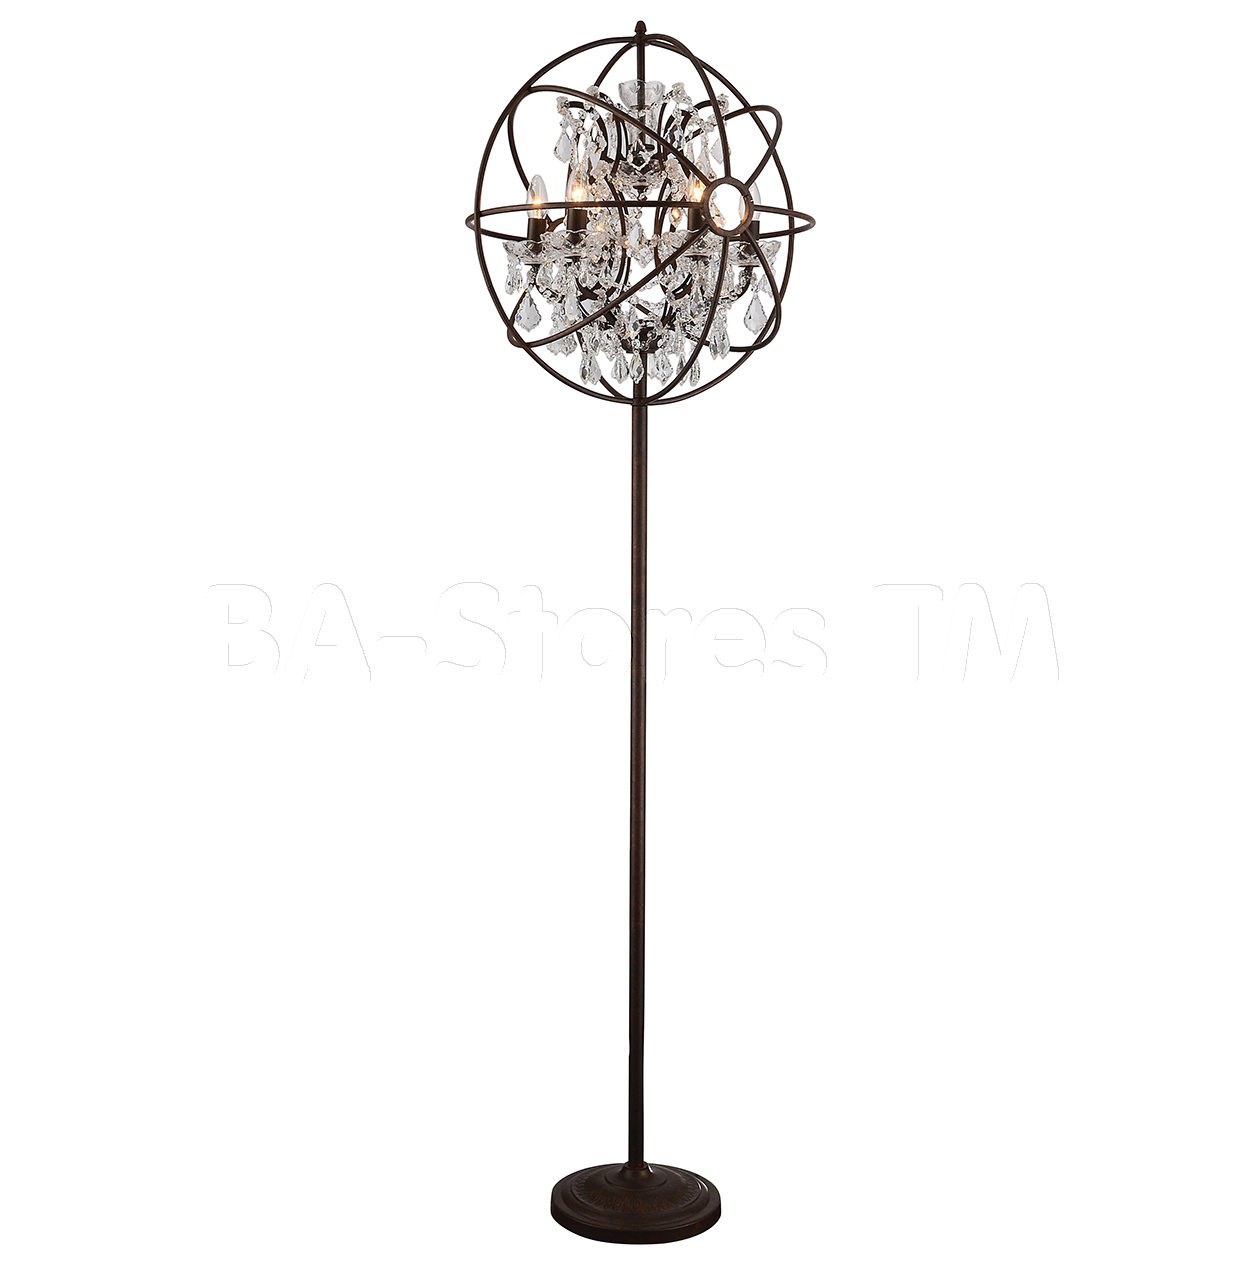 187161_AF-40096-Benie-Metal-Crystal-Floor-Lamp